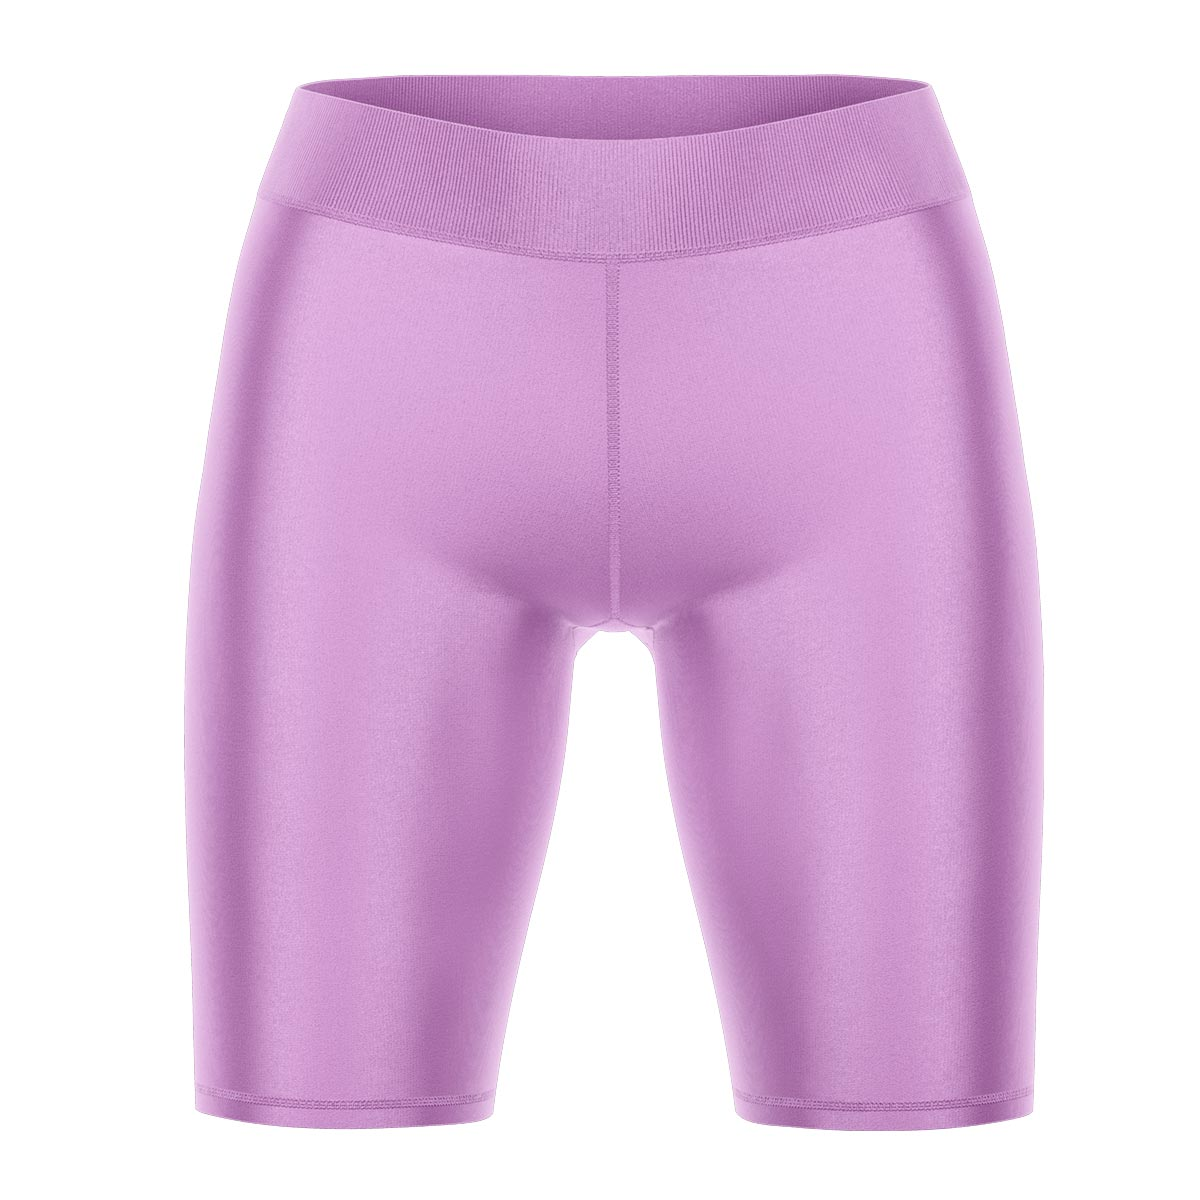 Light Orchid Yoga Shorts